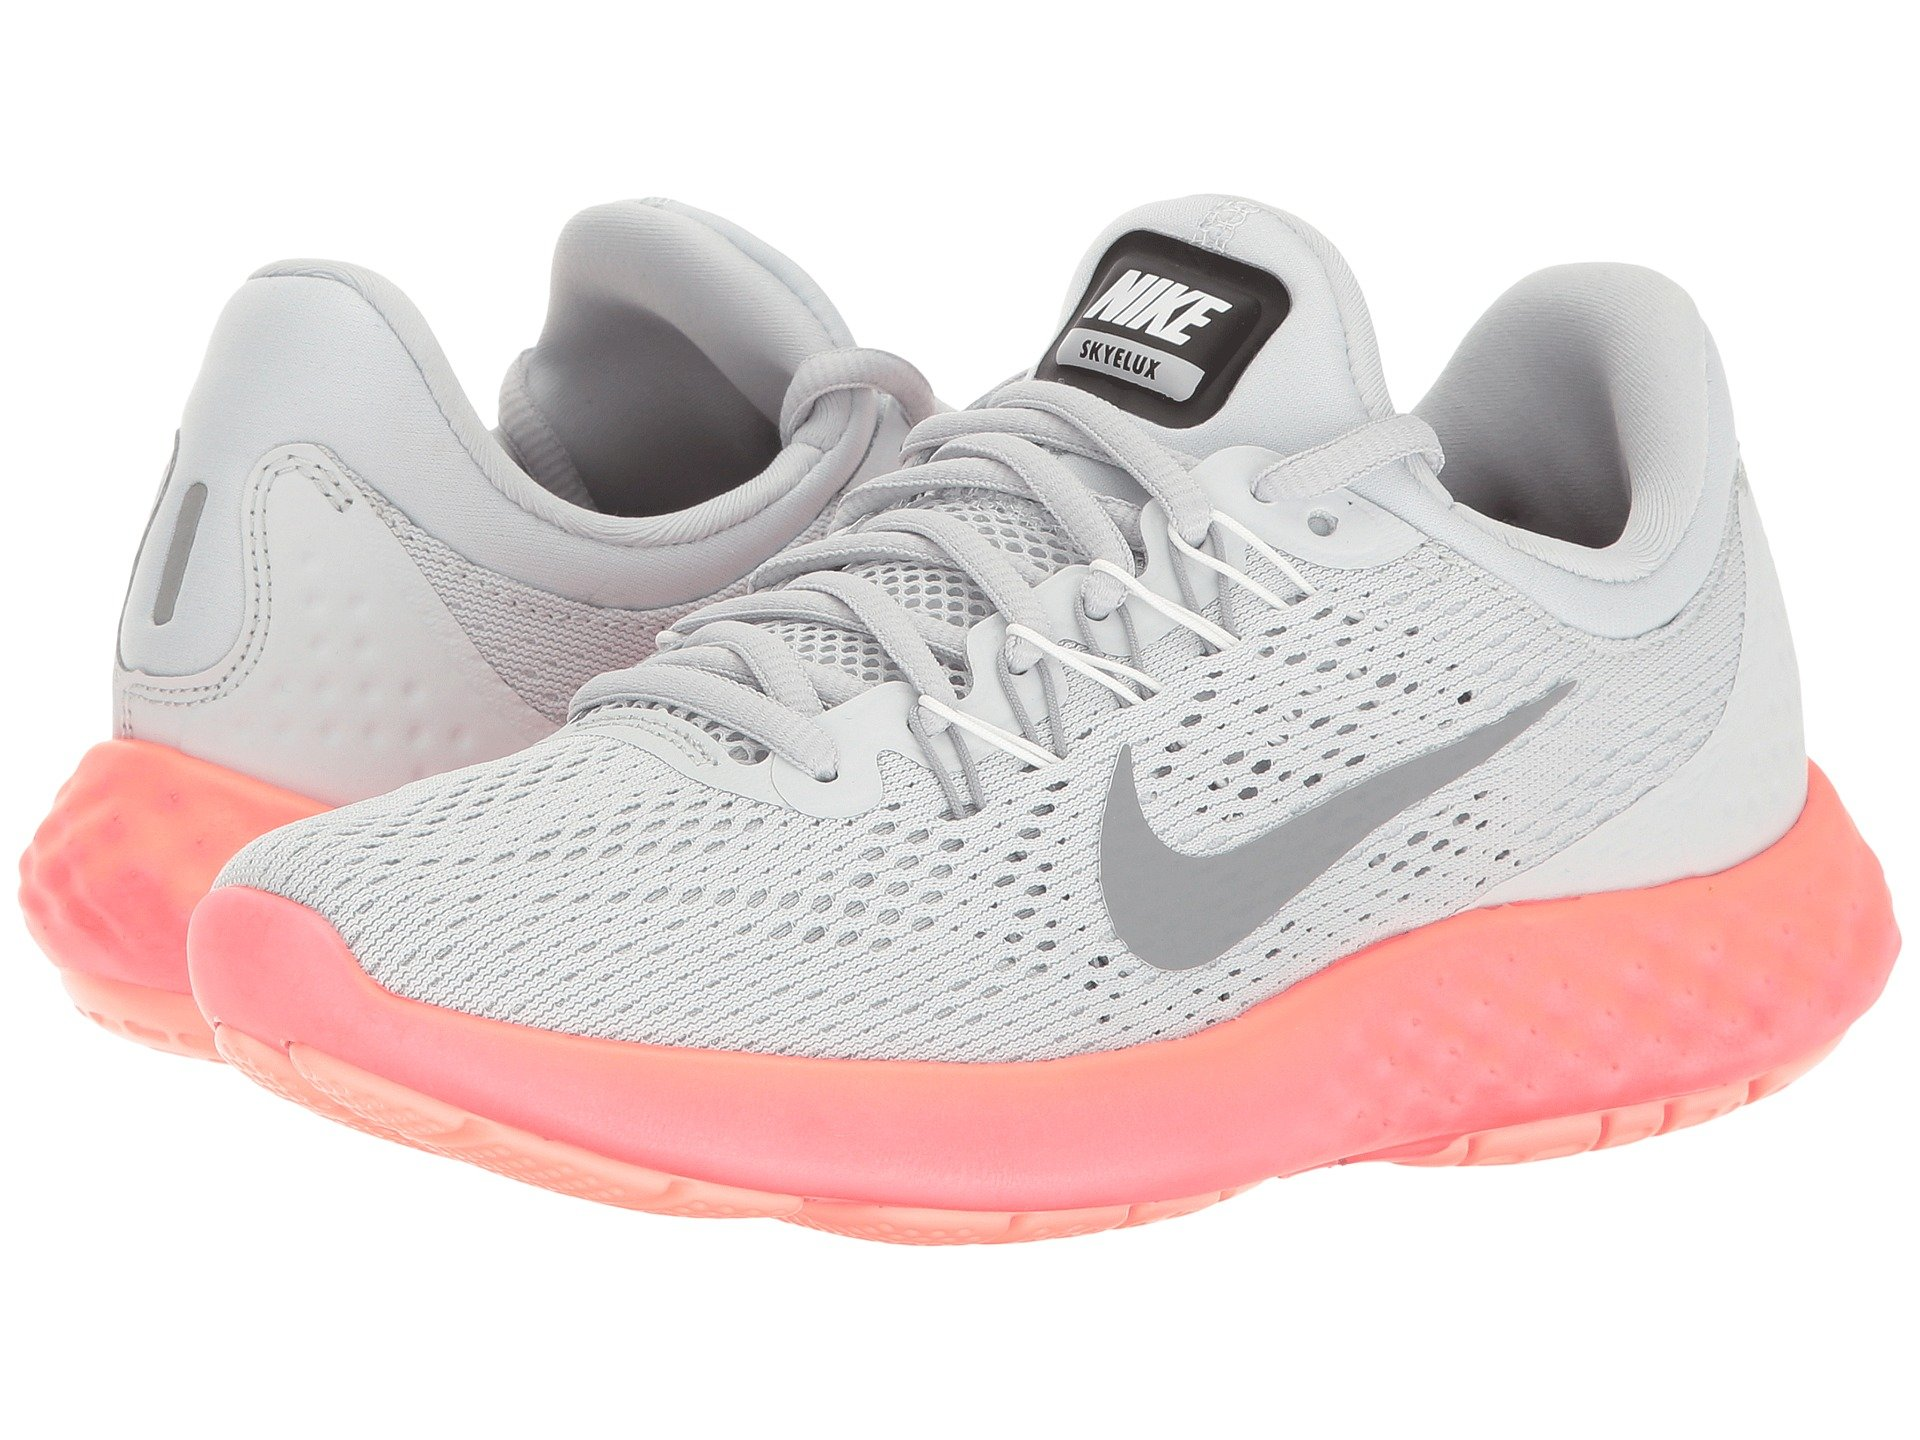 a80afd8d431f Nike Lunar Skyelux In Pure Platinum Stealth Summit White